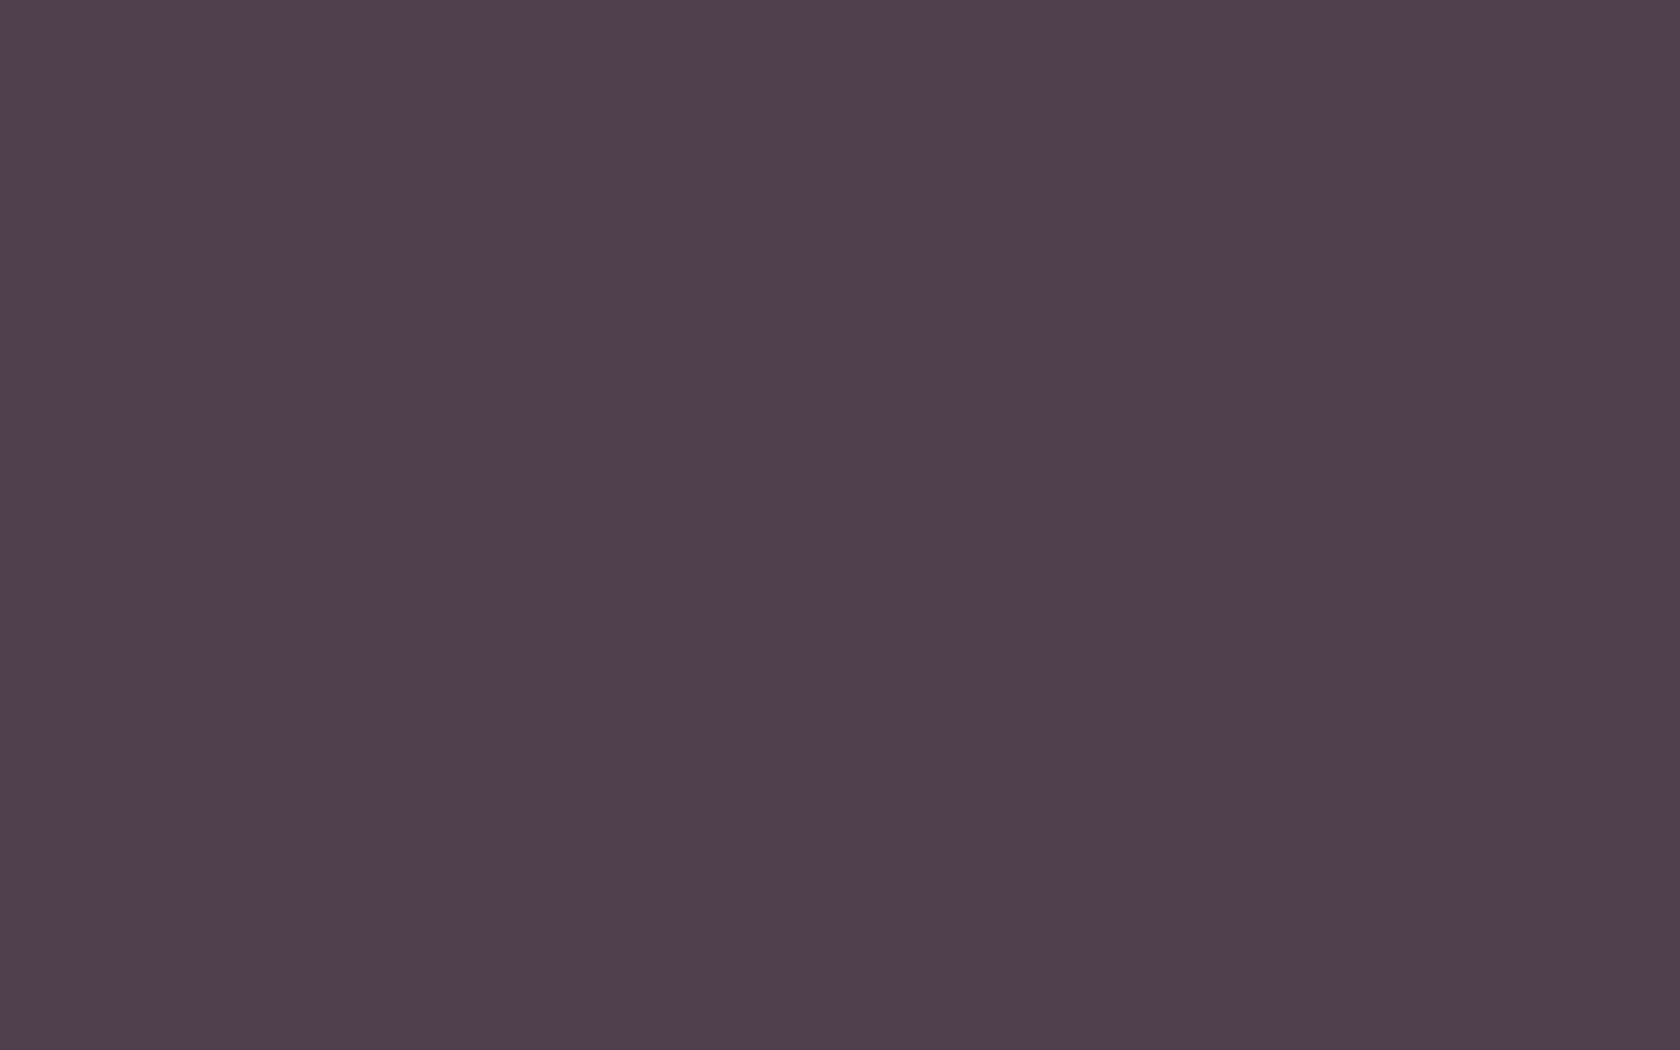 1680x1050 Purple Taupe Solid Color Background